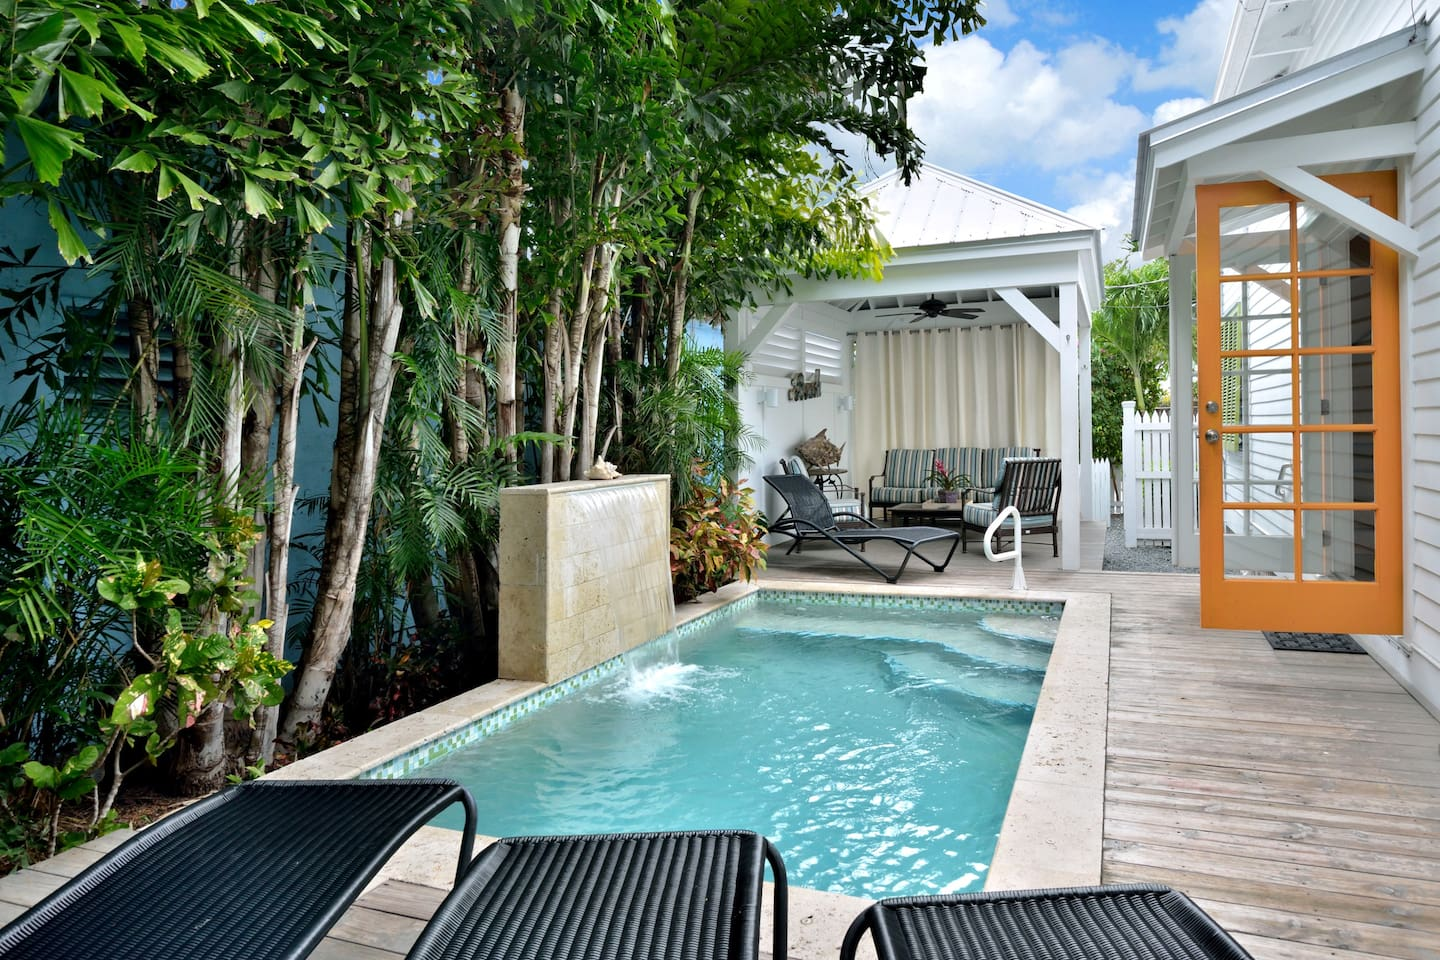 Lovely private pool with waterfall and outdoor cabana for relaxing